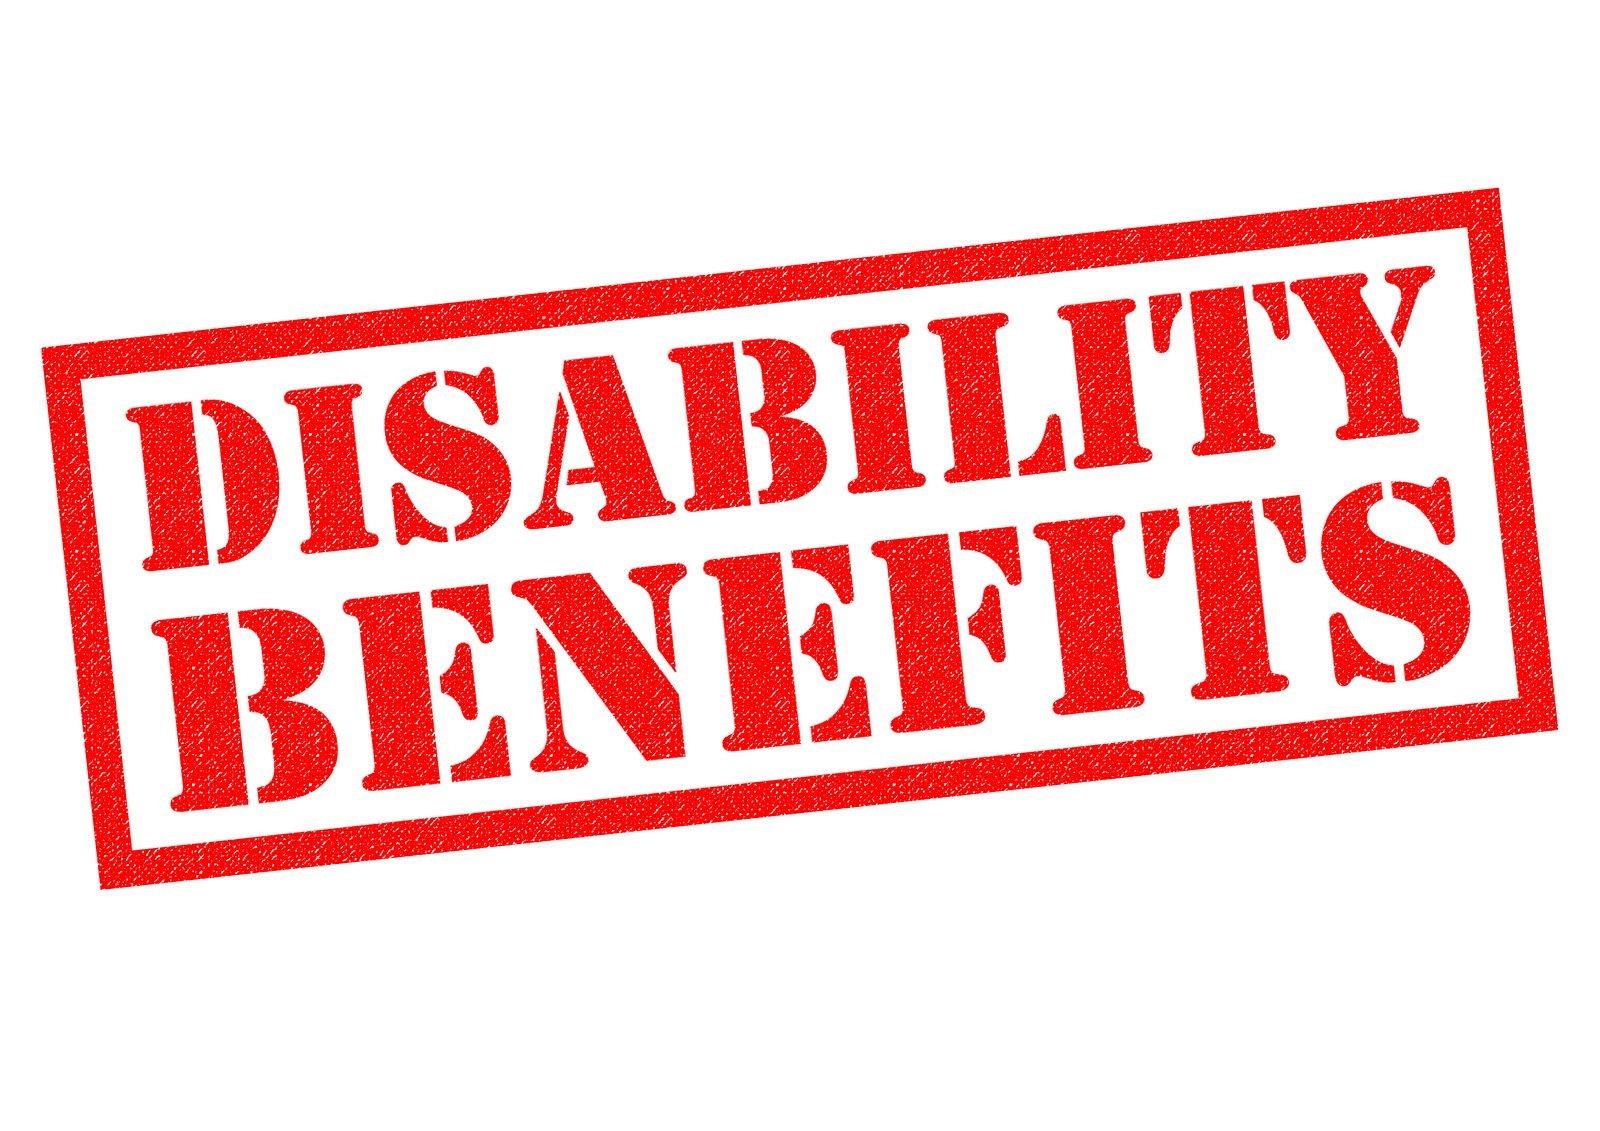 A Picture of Stamped Letters in Red that Read 'Disability Benefits'